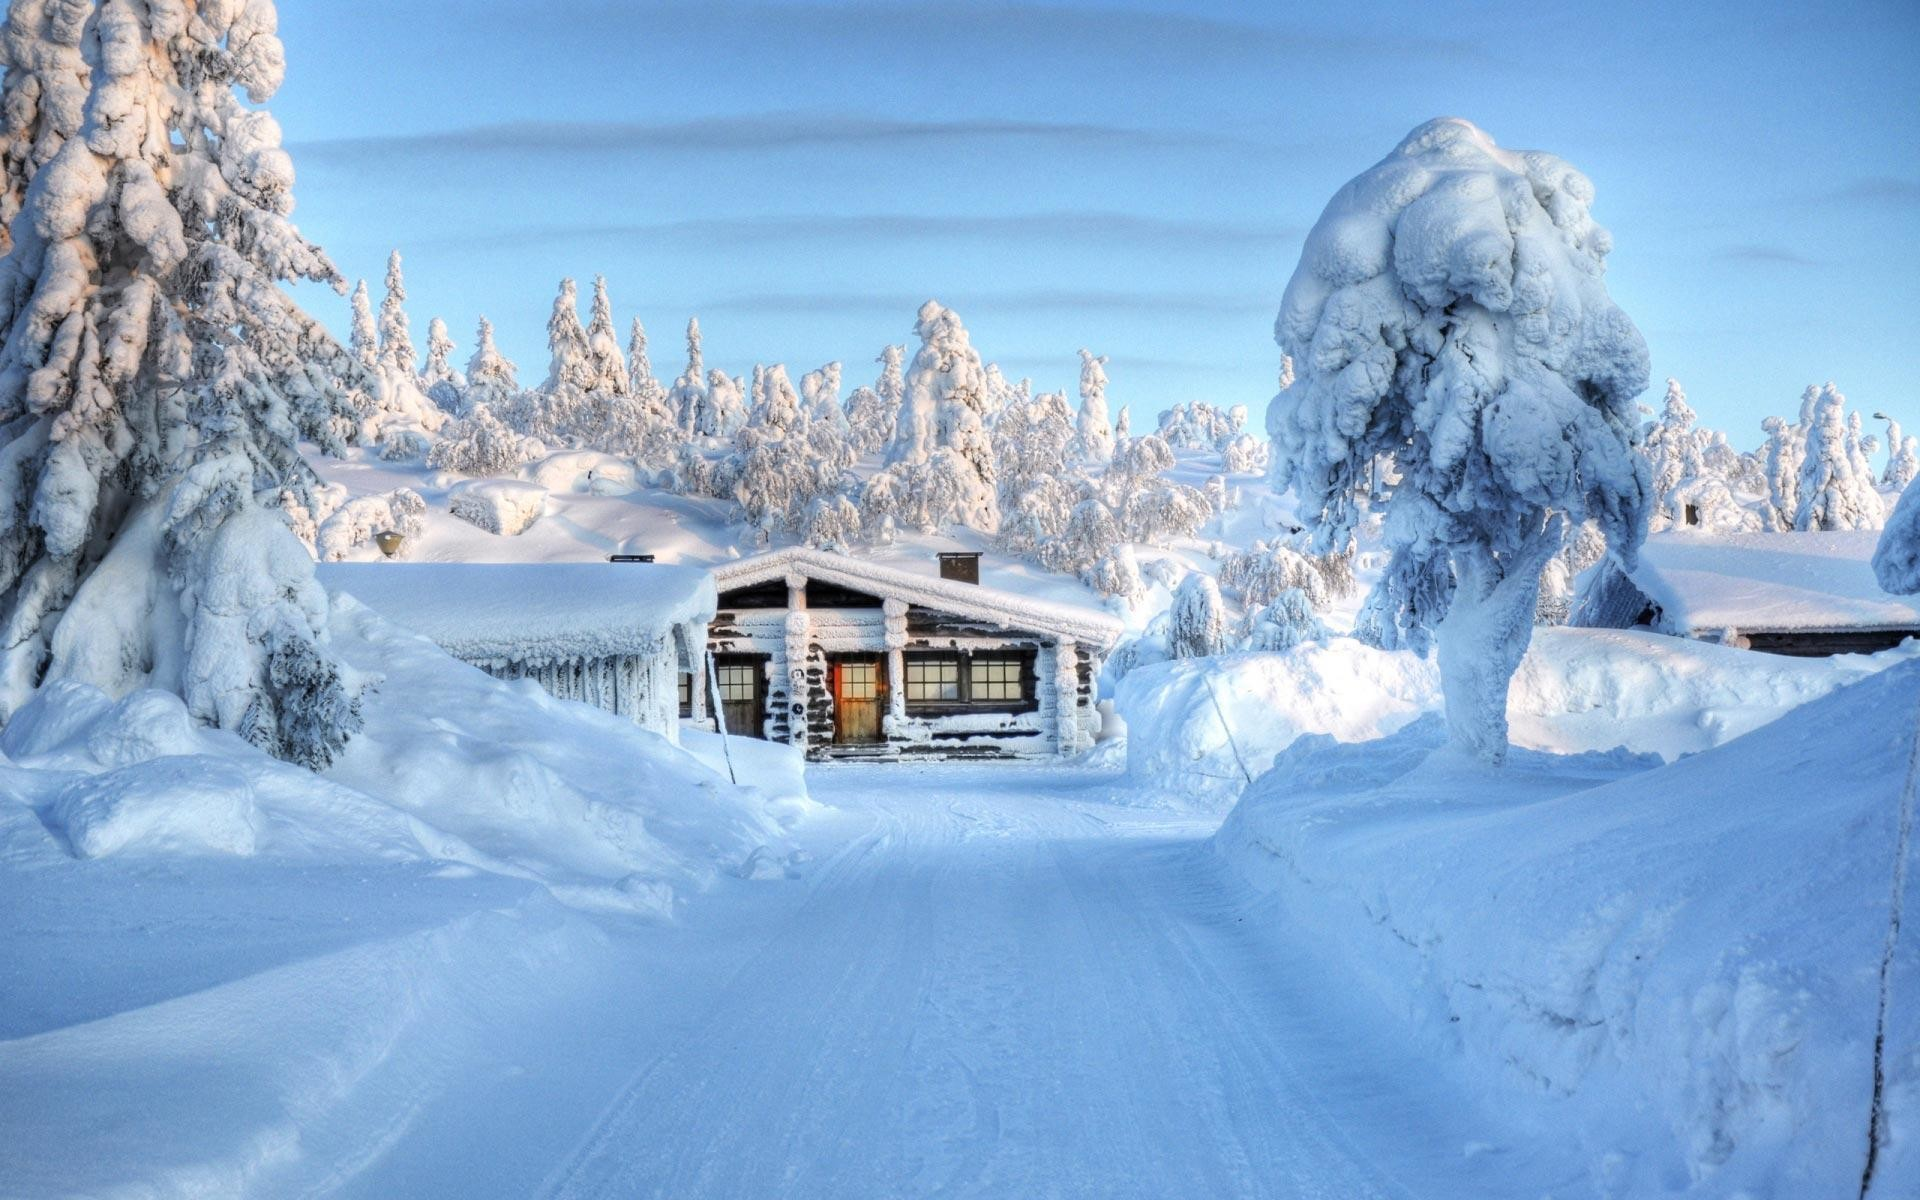 Snow Falling HD Wallpapers